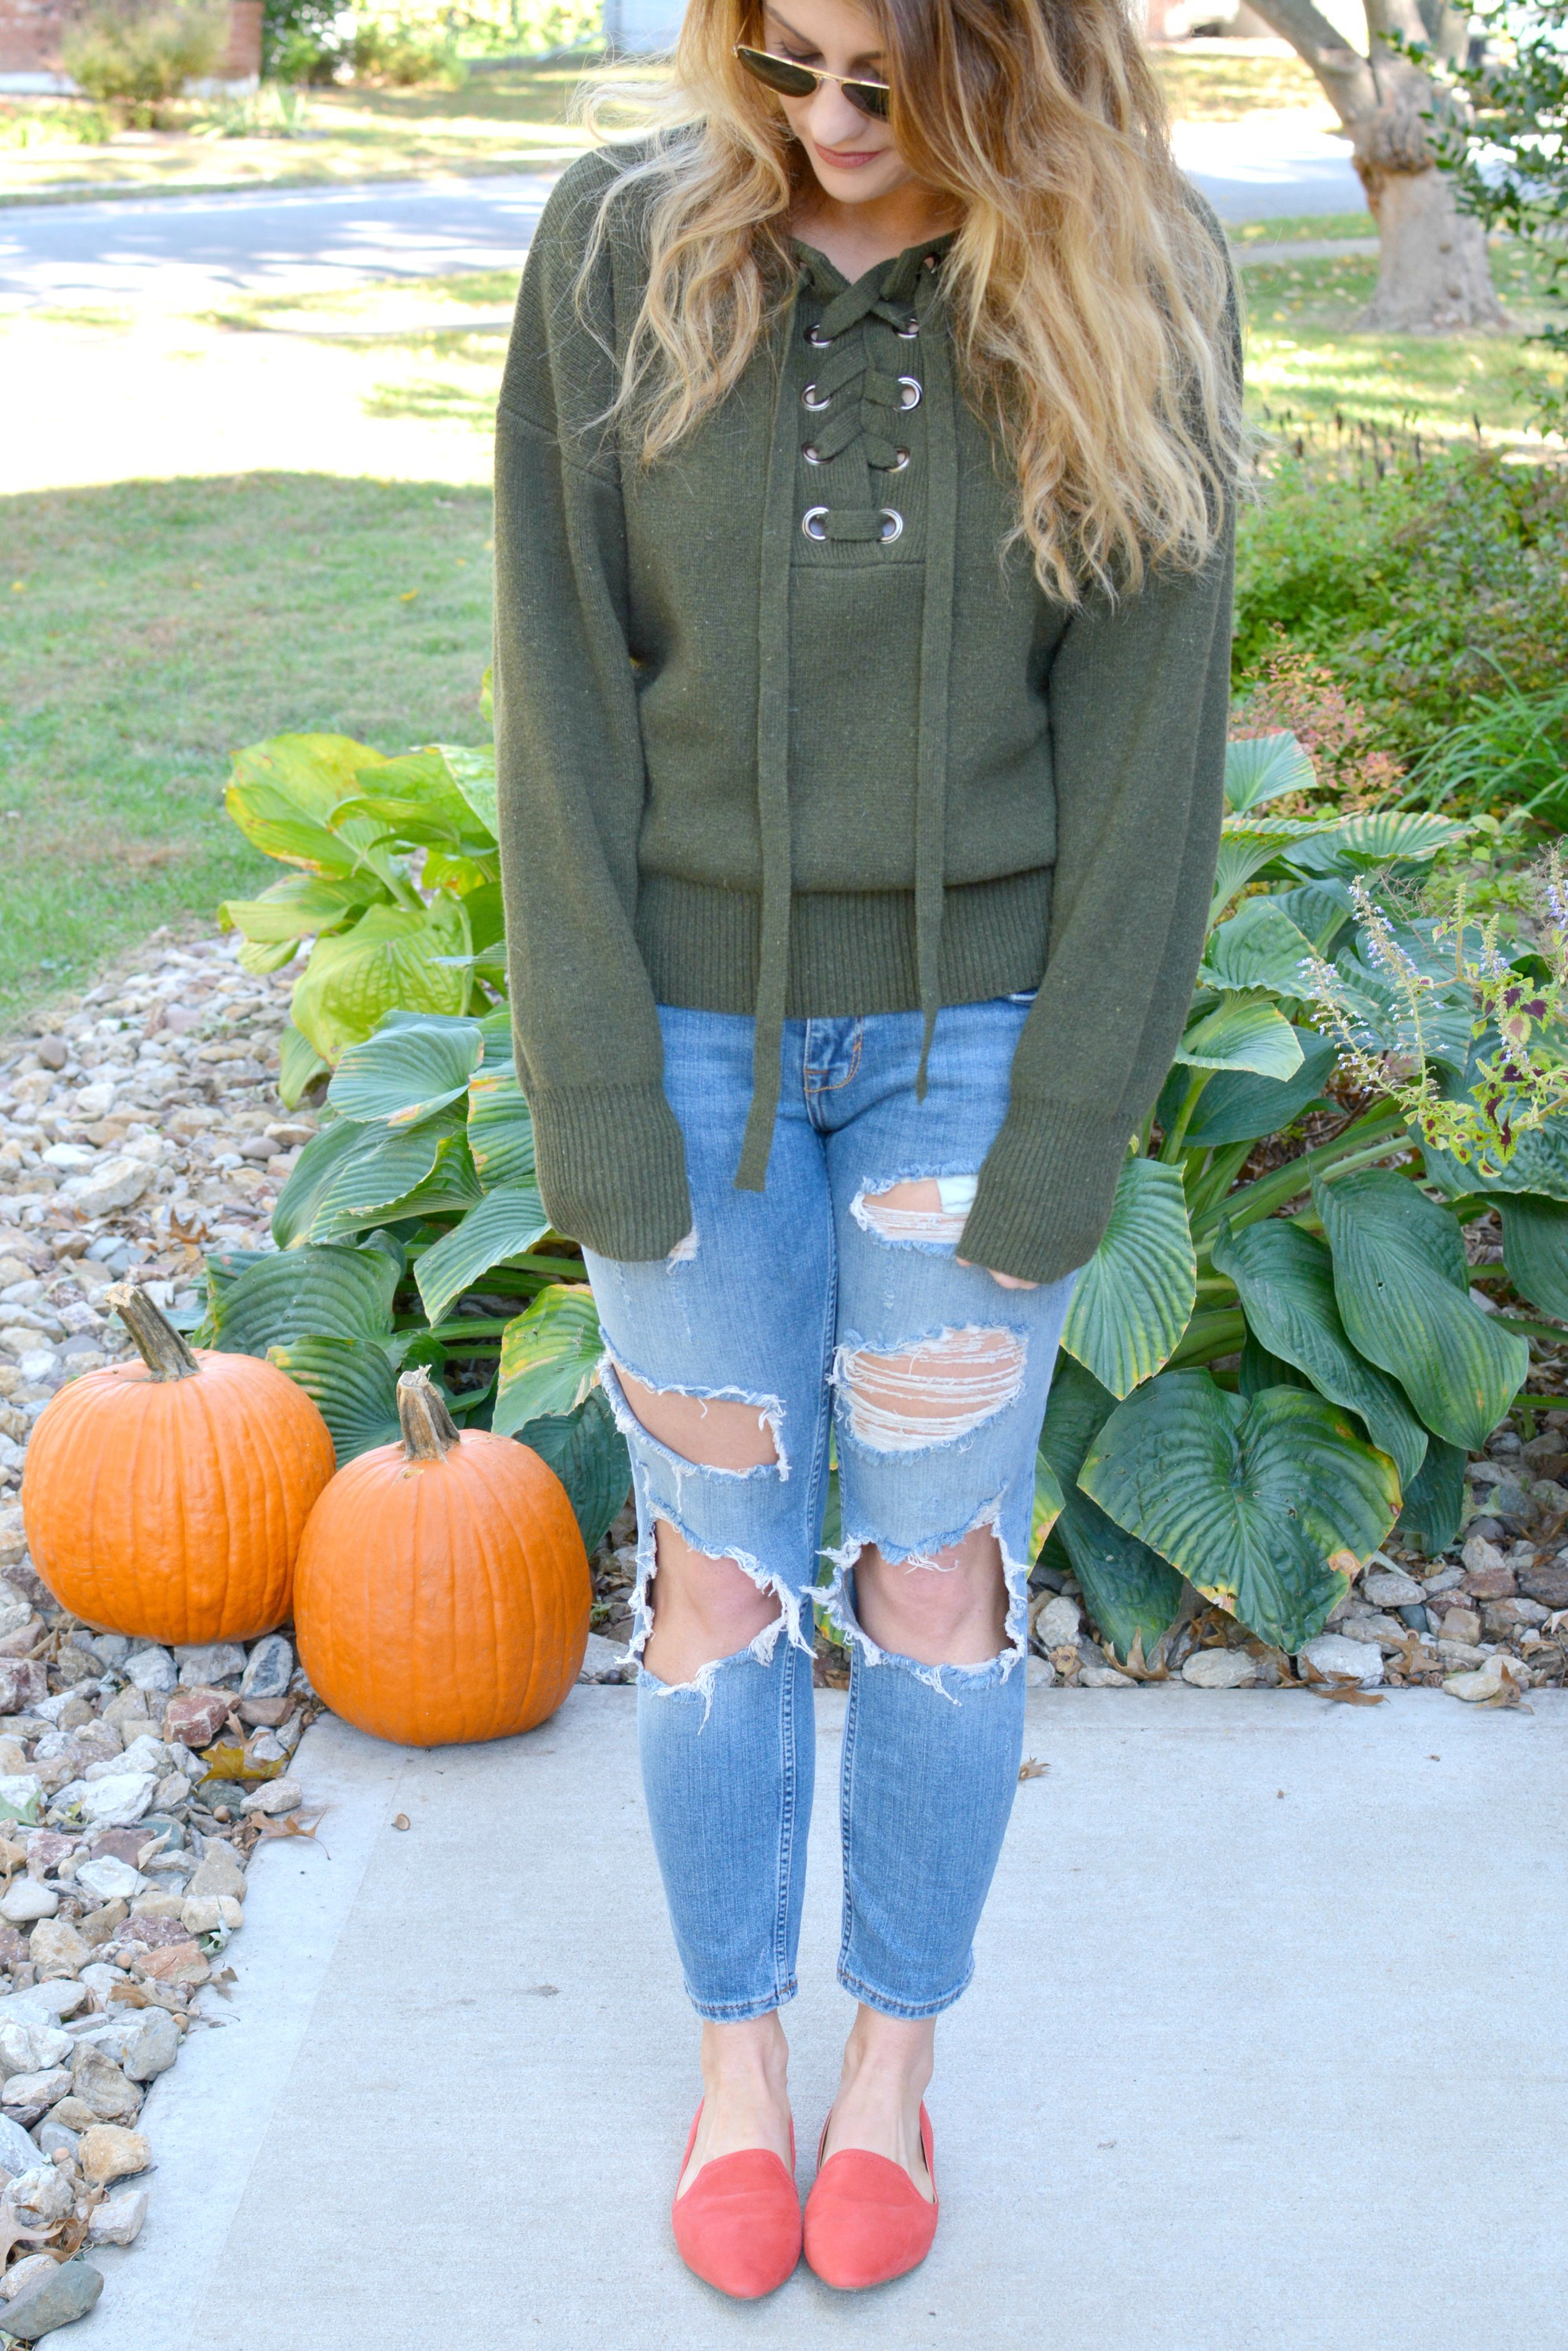 Ashley from LSR in a green lace-up sweater, destroyed denim, and orange flats